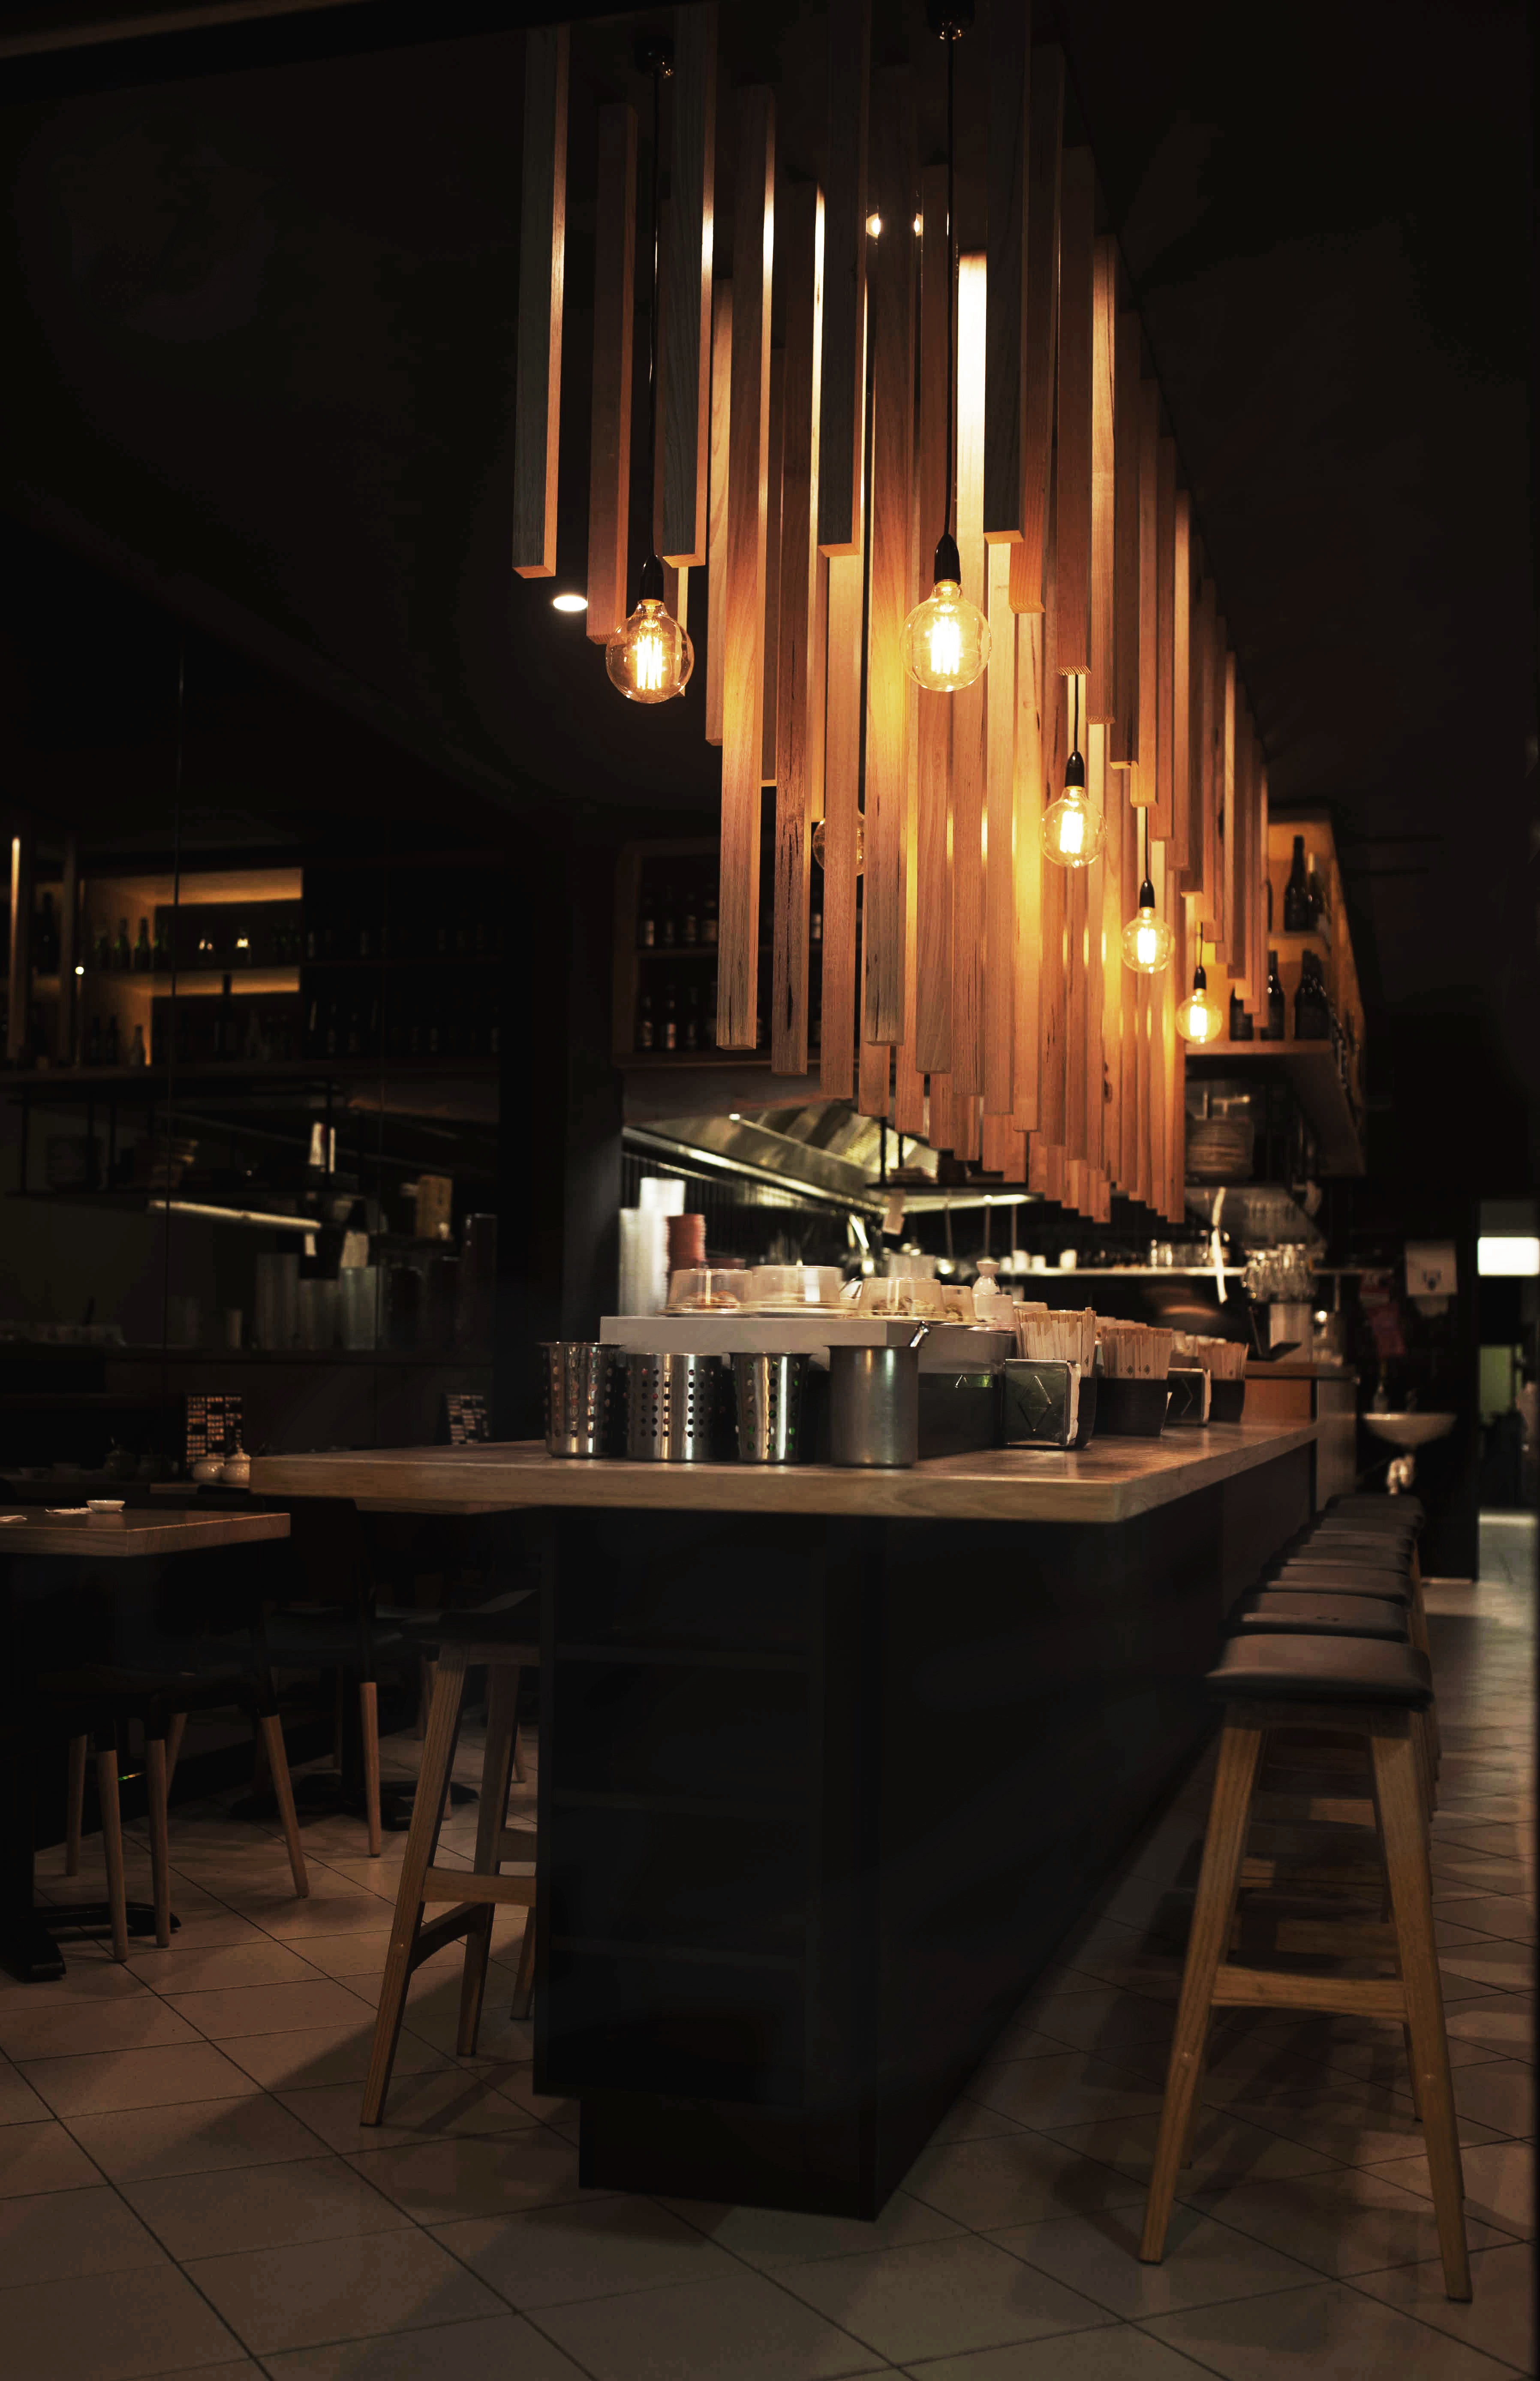 TARA SUSHI BAR - SURRY HILLS, NSW